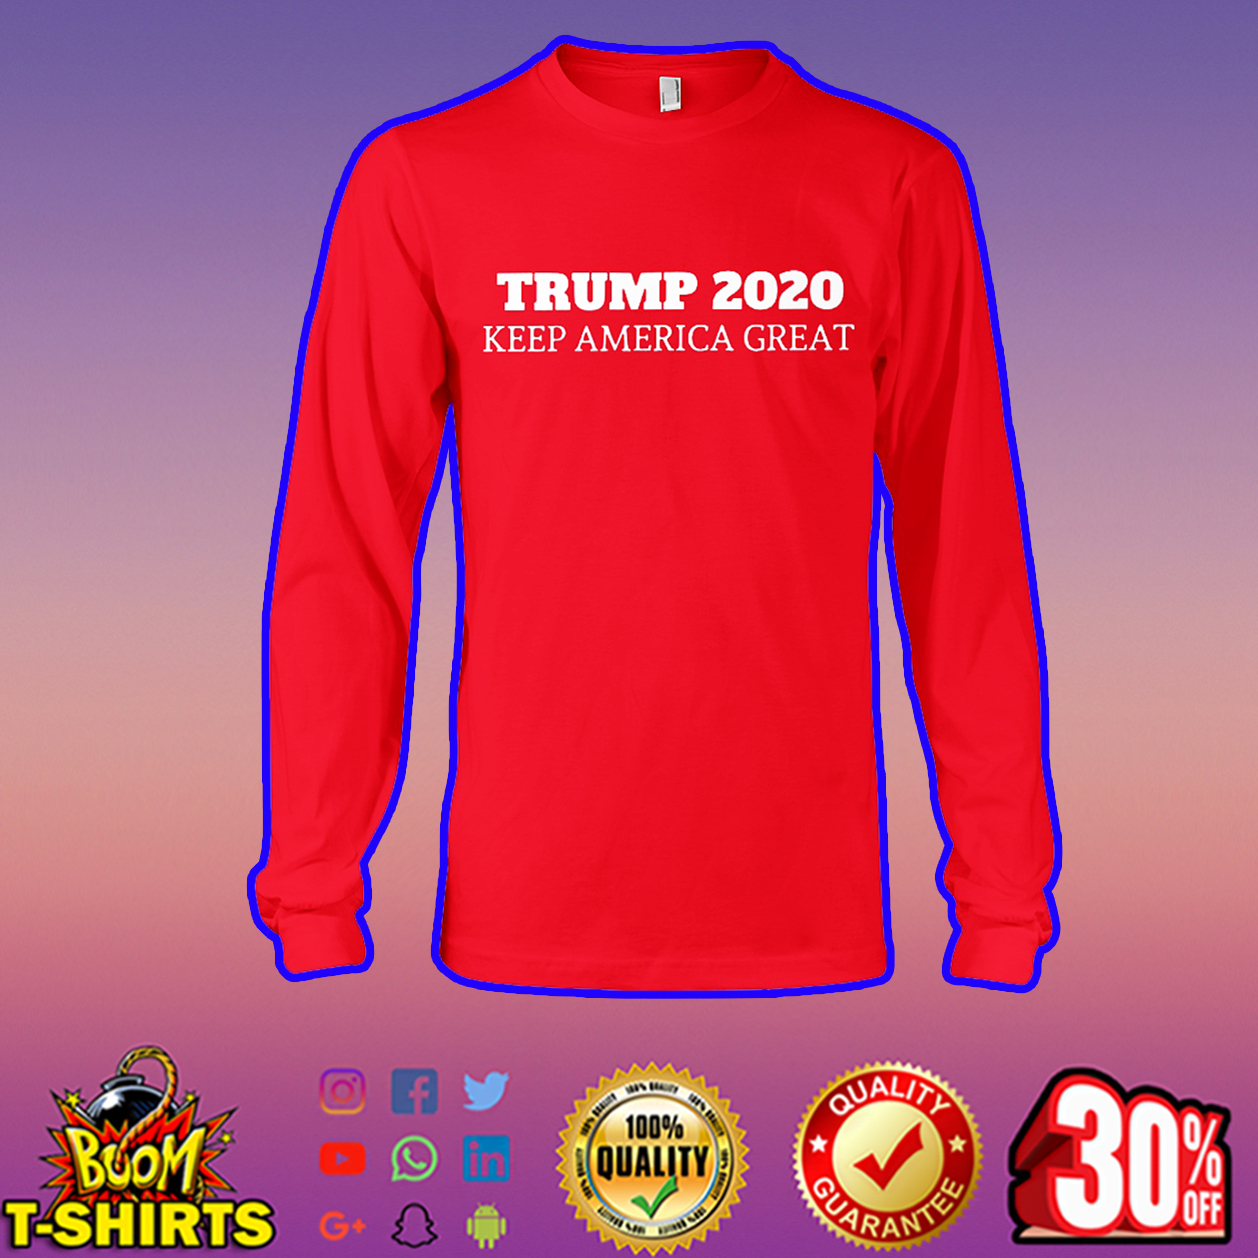 Trump 2020 keep America great long sleeve tee